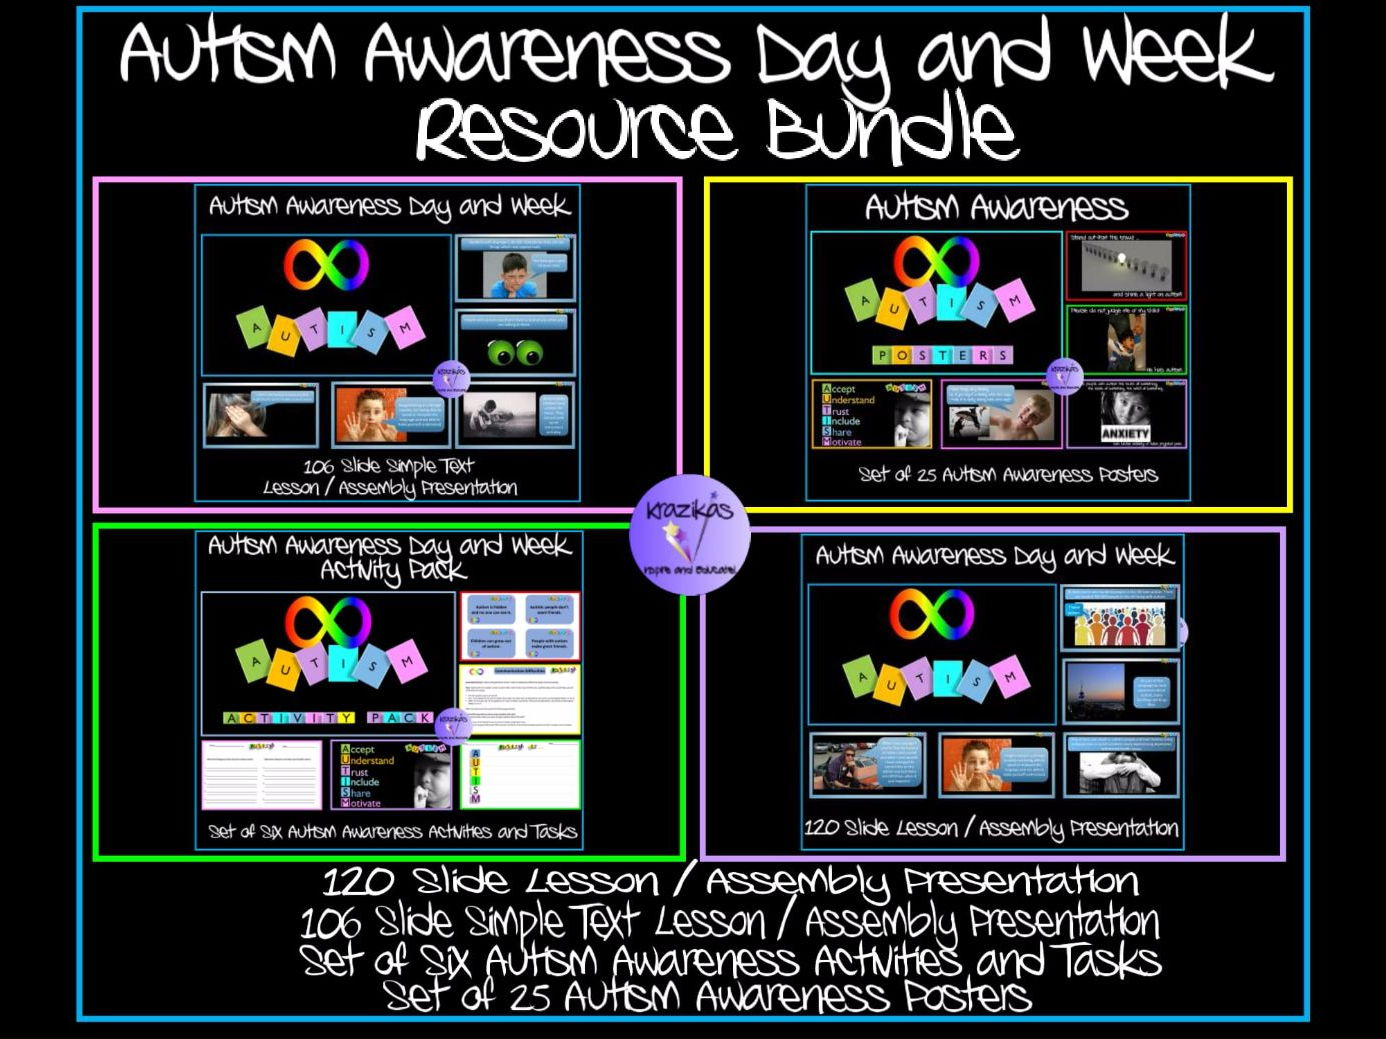 Autism Awareness Bundle - Lesson / Assembly Presentation, Activity Pack, Set of 25 Autism Posters